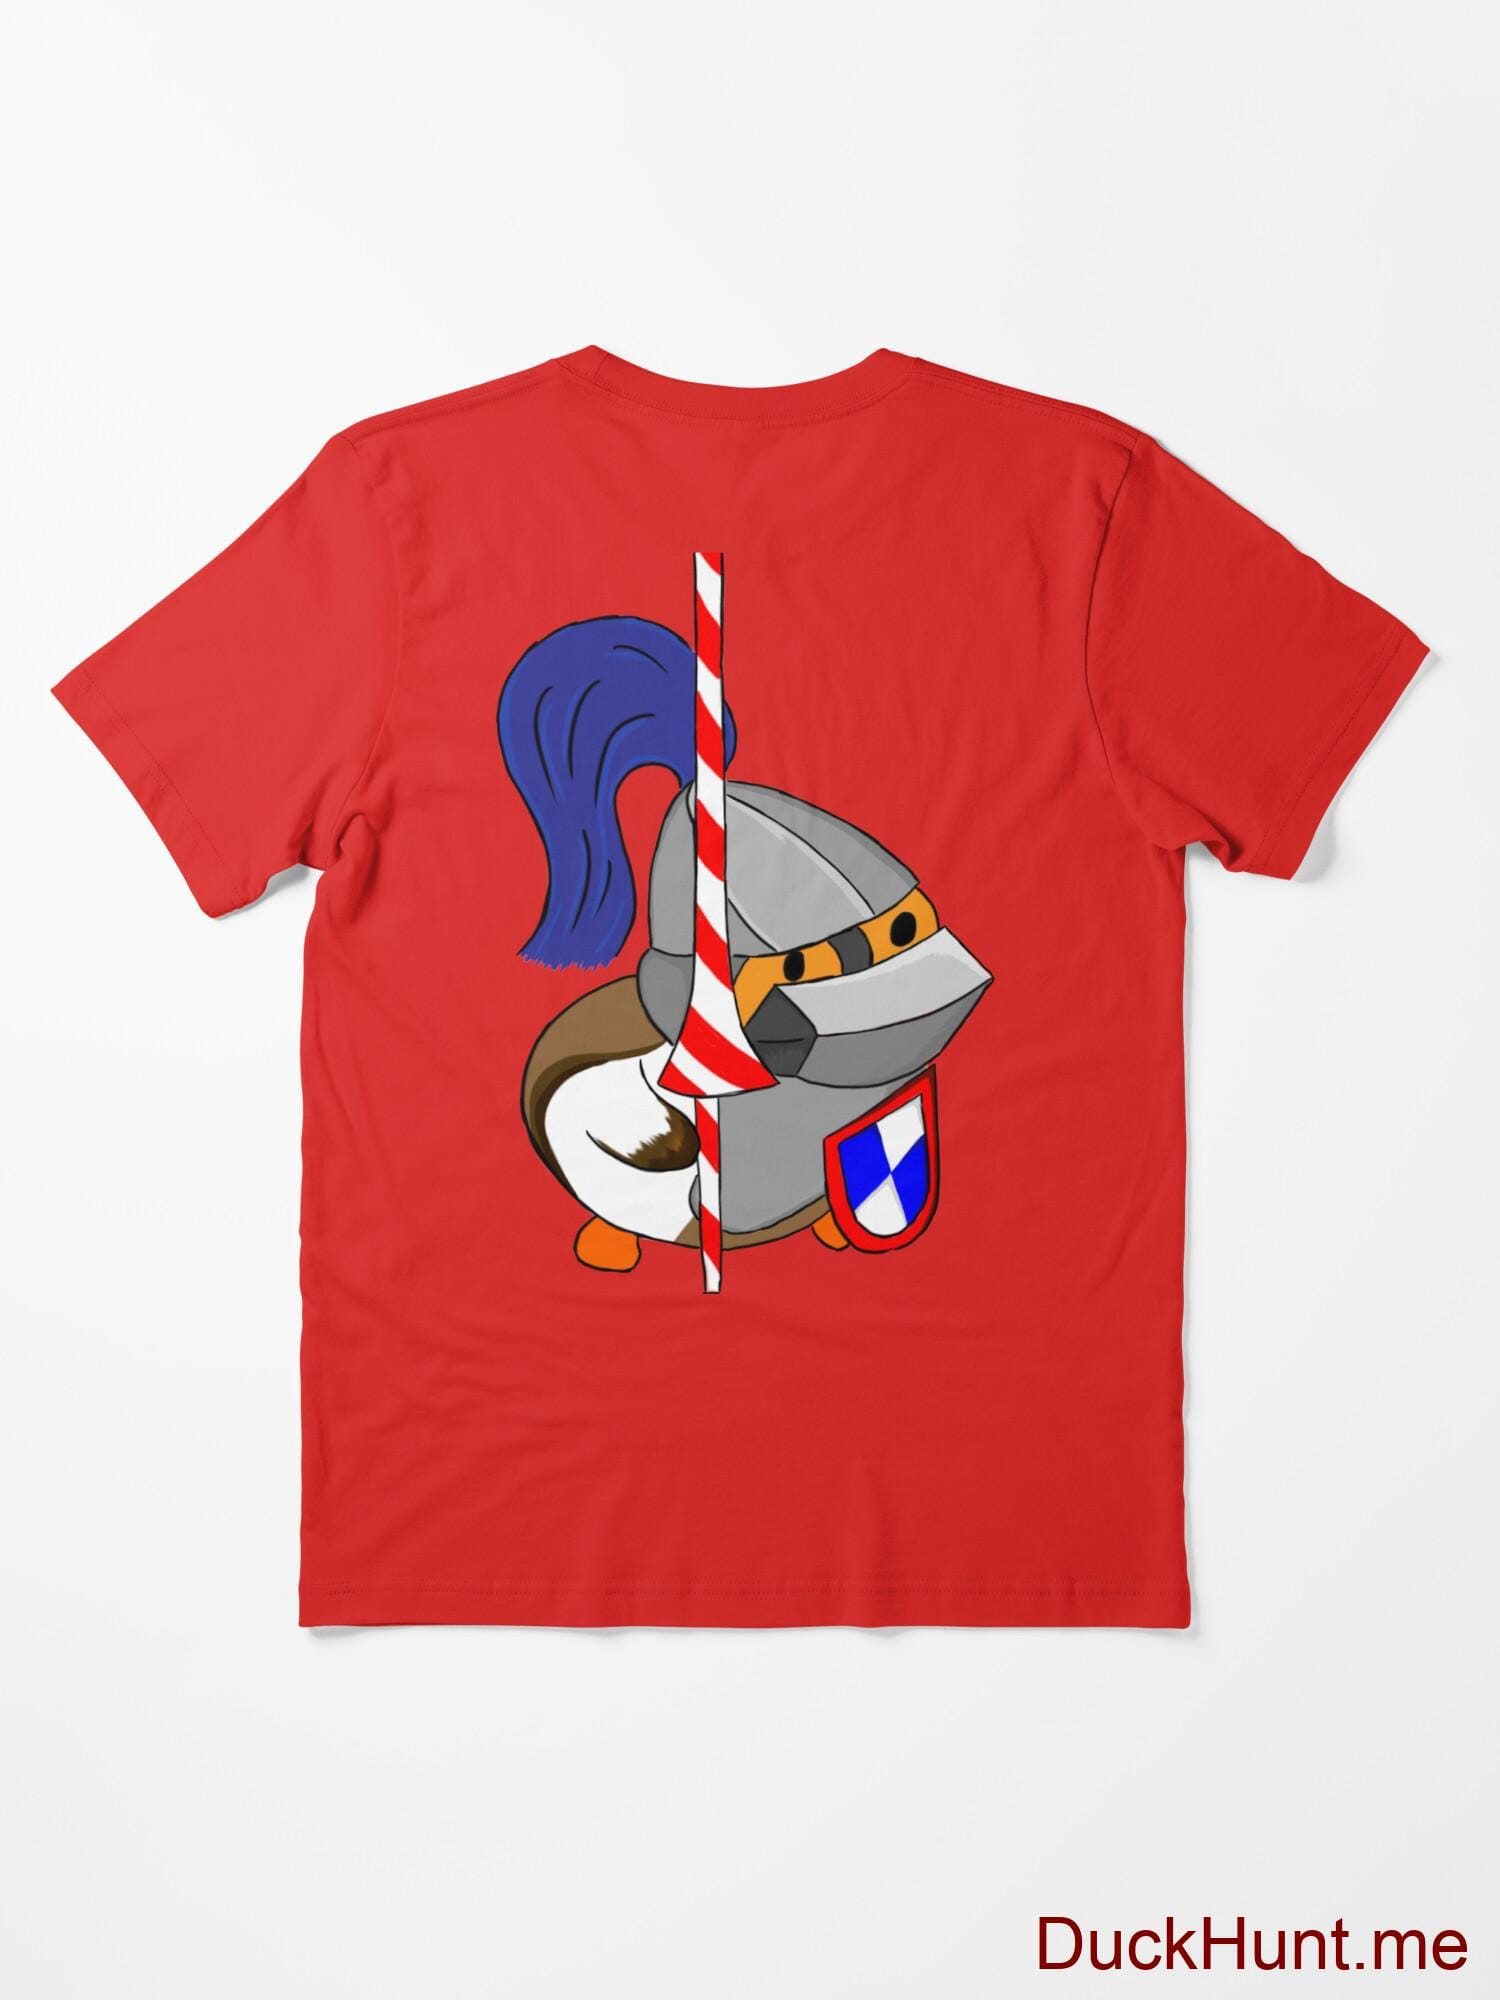 Armored Duck Red Essential T-Shirt (Back printed) alternative image 1